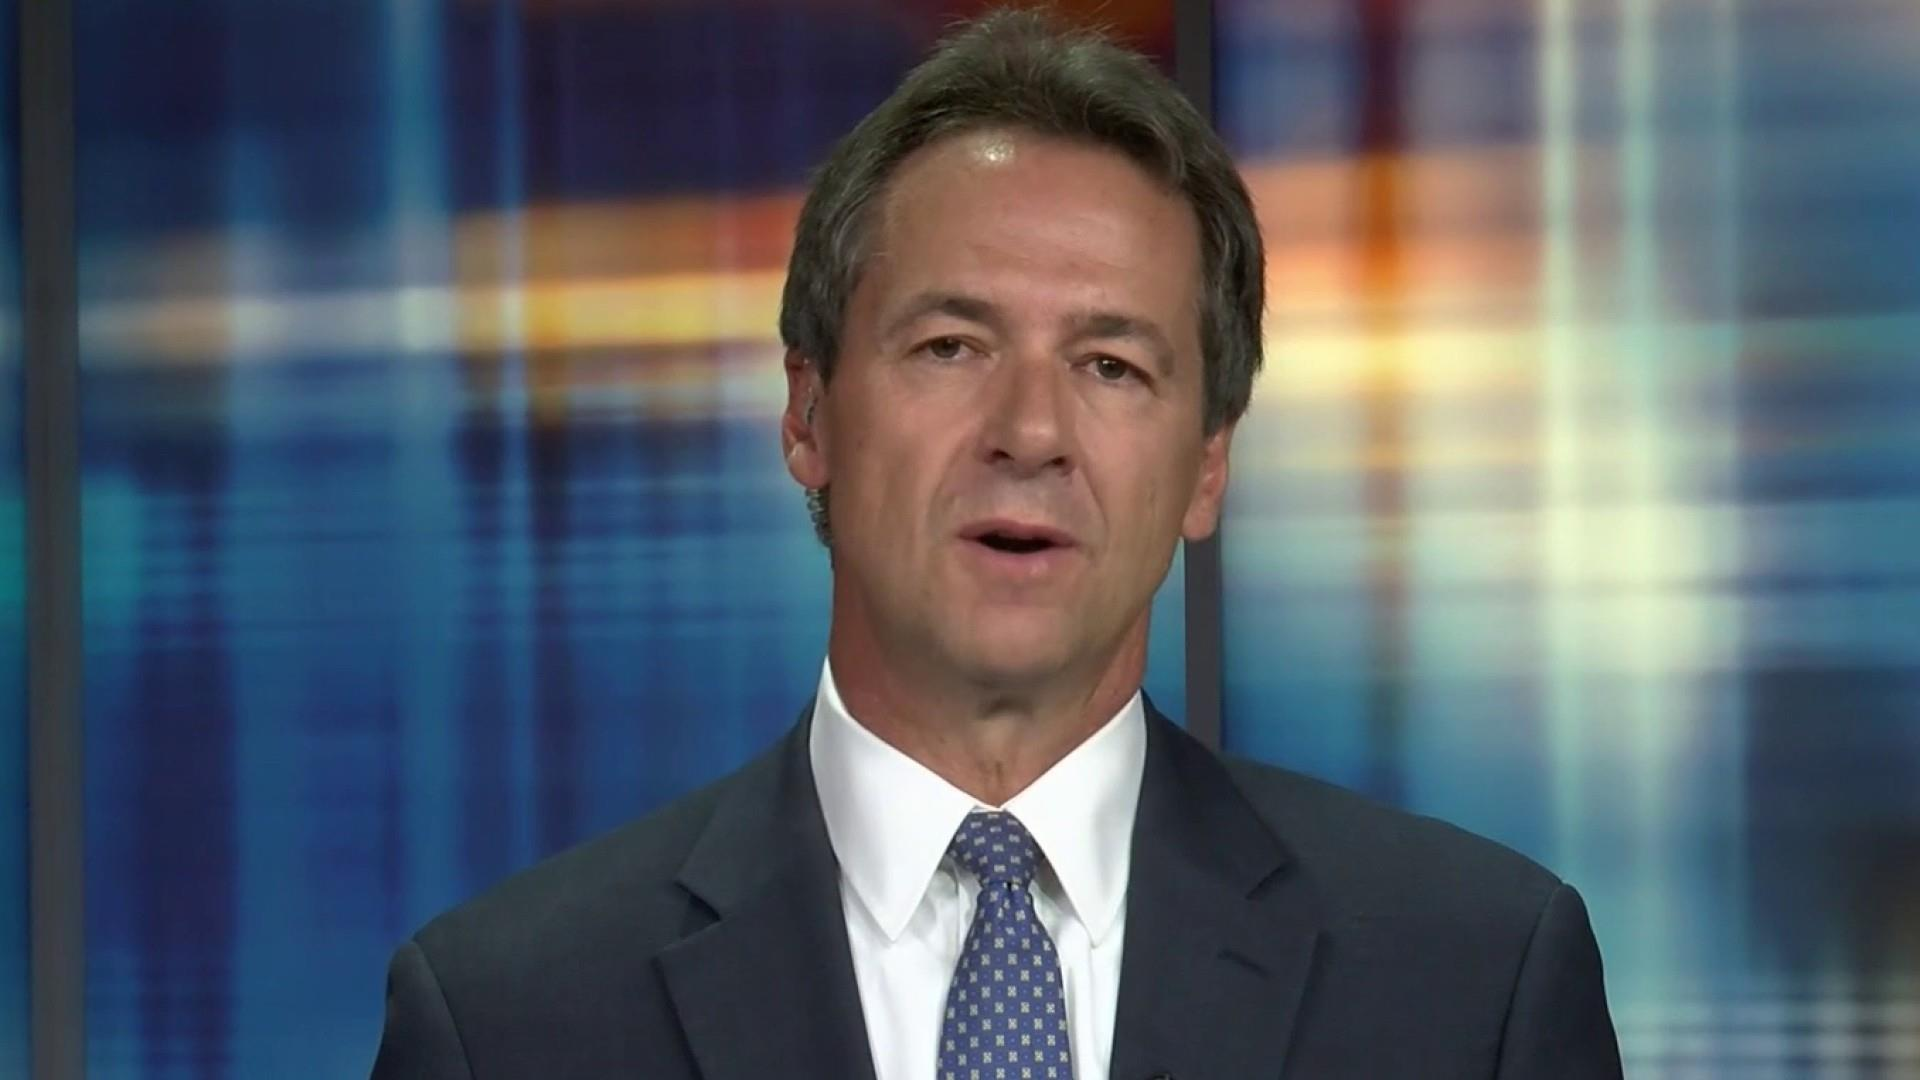 Bullock: DNC rules have allowed a billionaire to buy a spot in debate